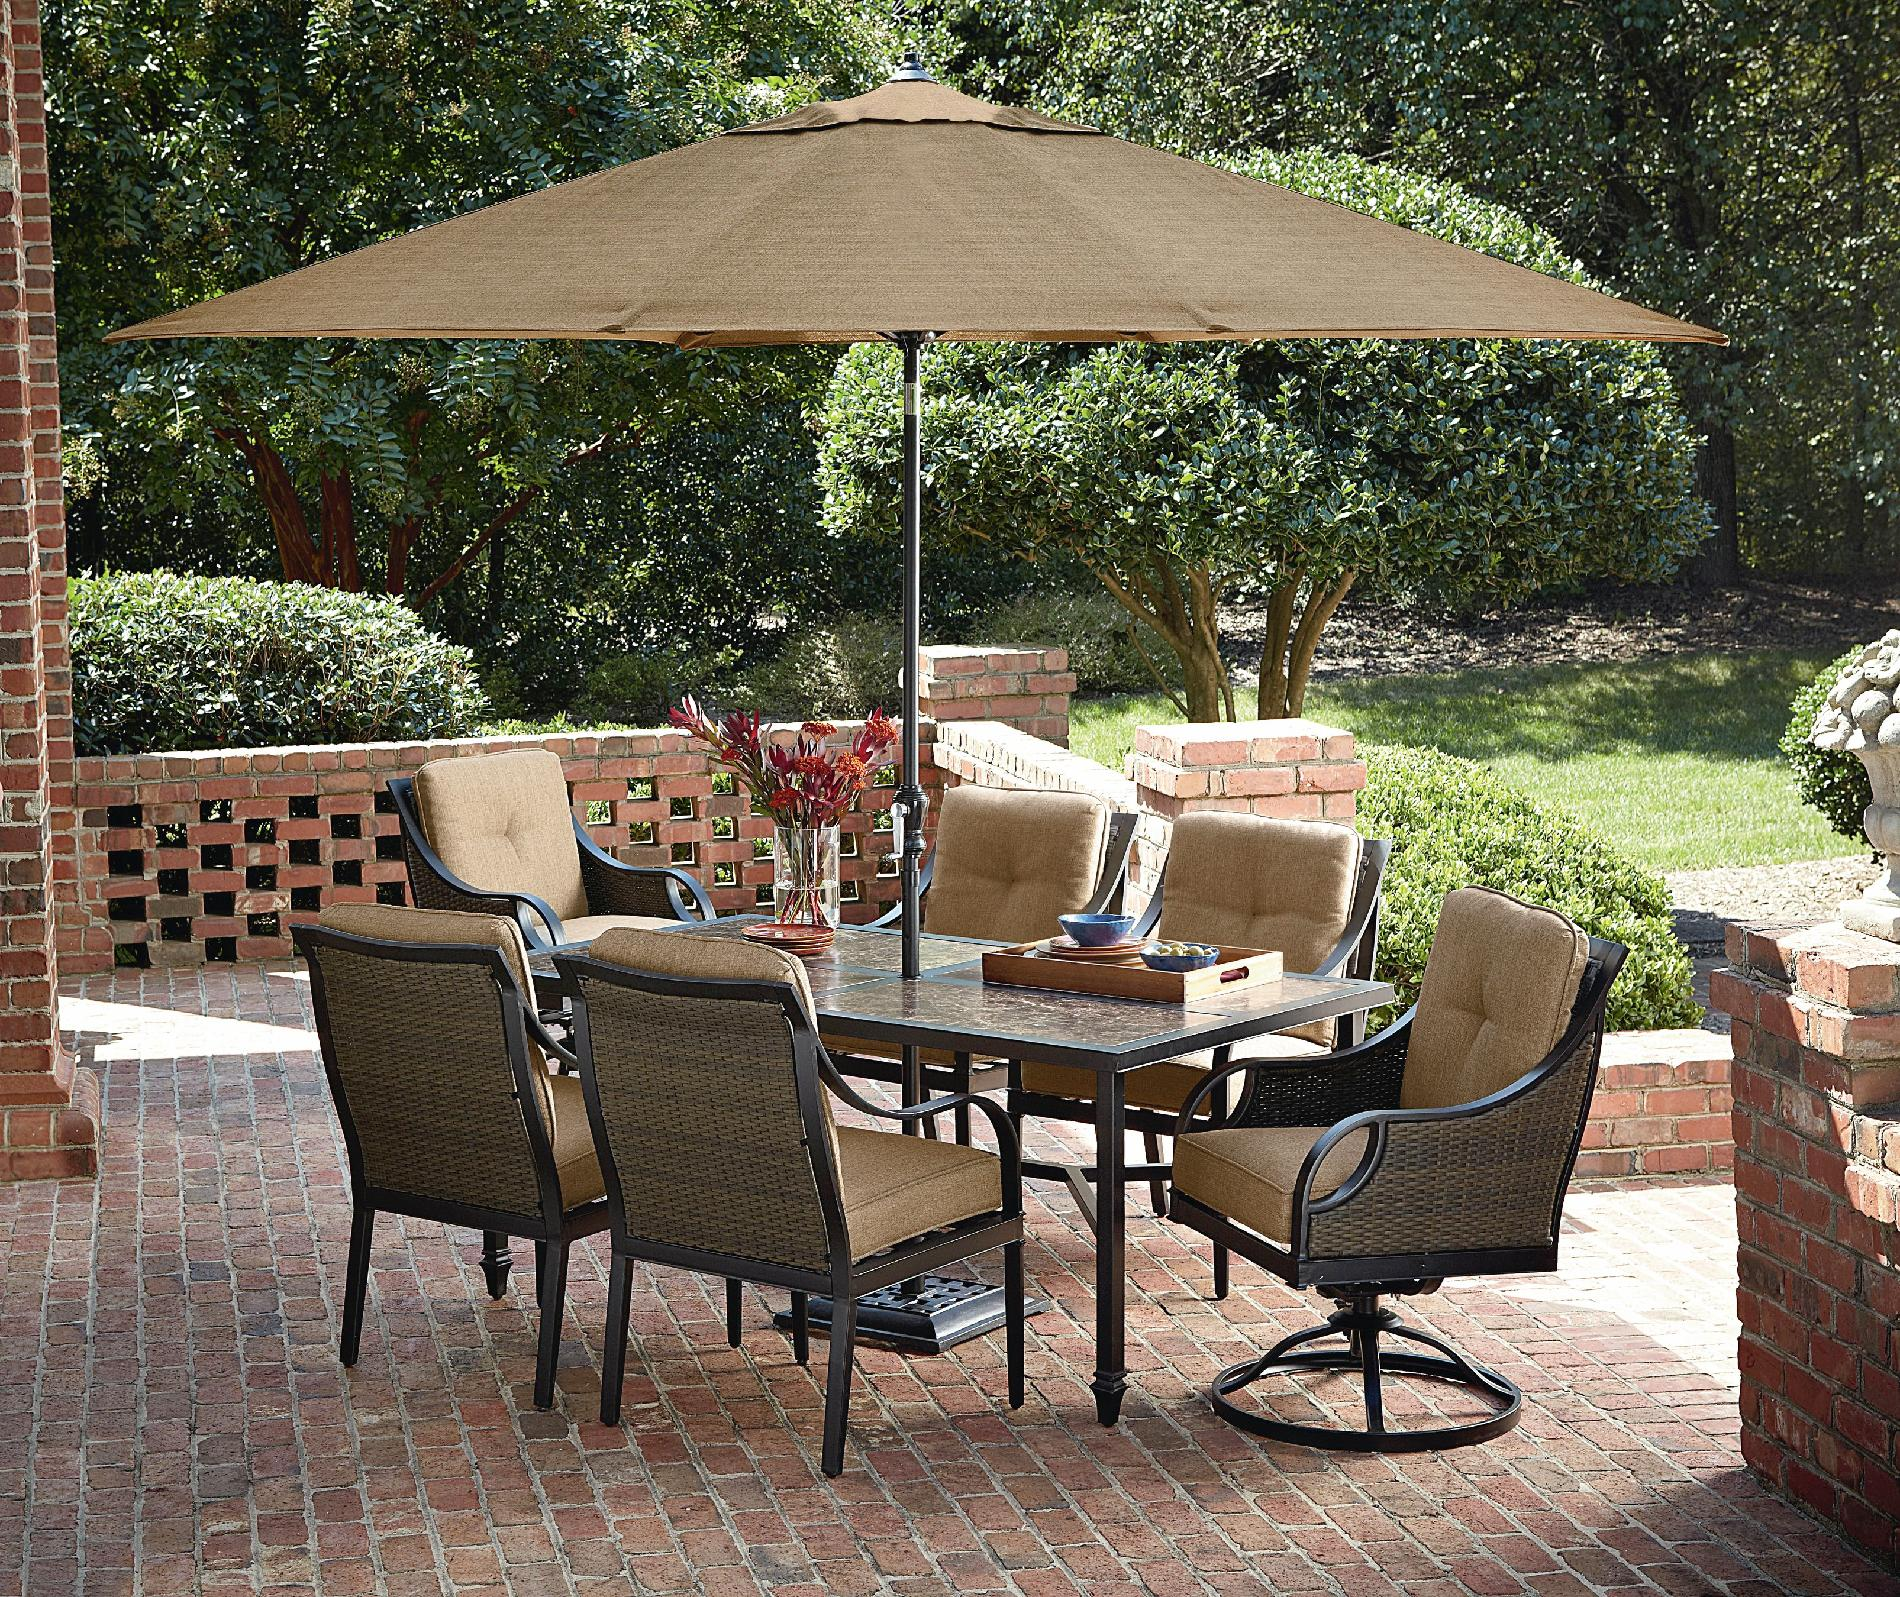 sears patio furniture dining sets Patio Dining Tables | Outdoor Dining Chairs - Sears